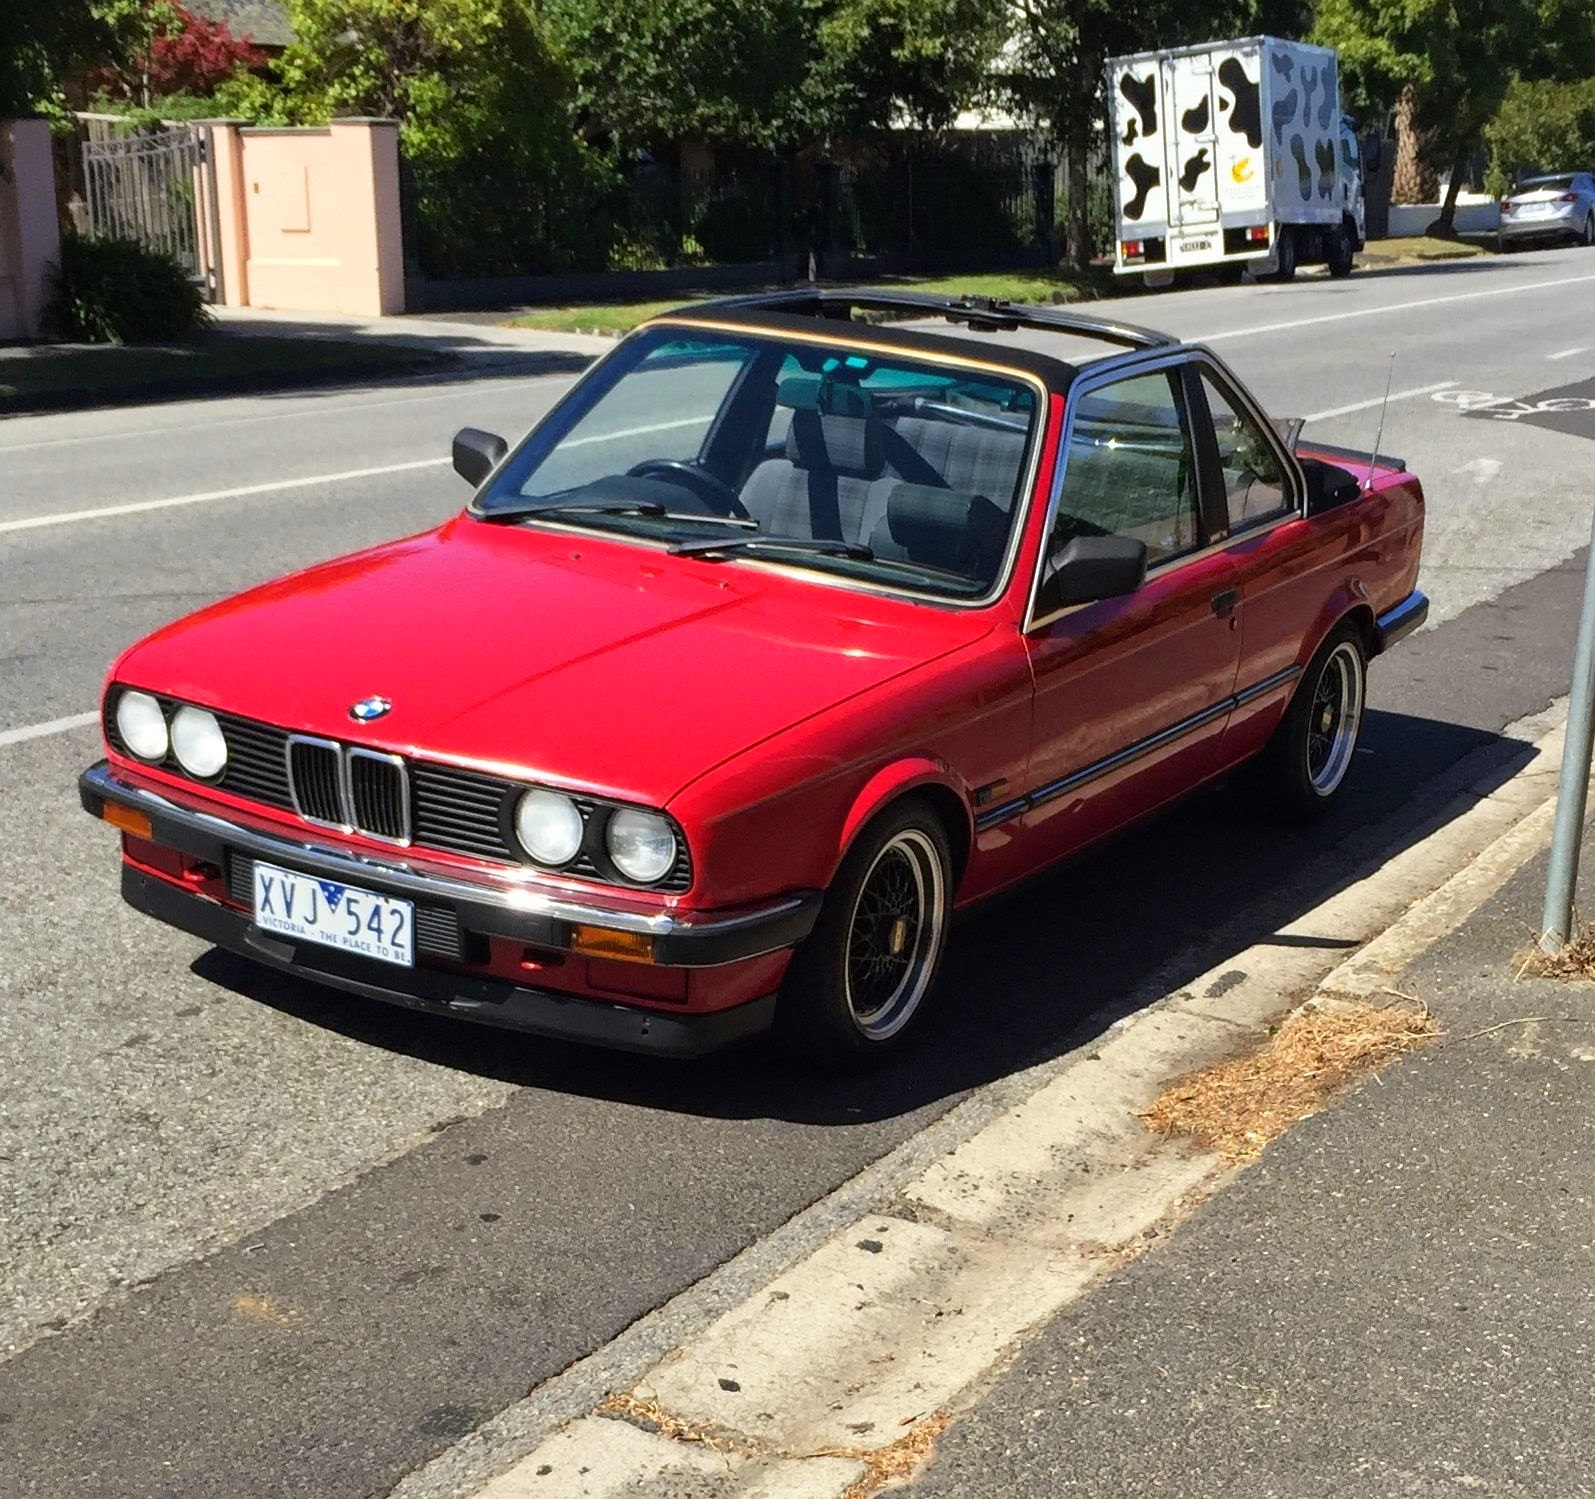 1984 Bmw 318i Manual Engine Diagram Baurspotting 1985 E30 Tc Baur For Sale In Australia Rh Blogspot Com Interior